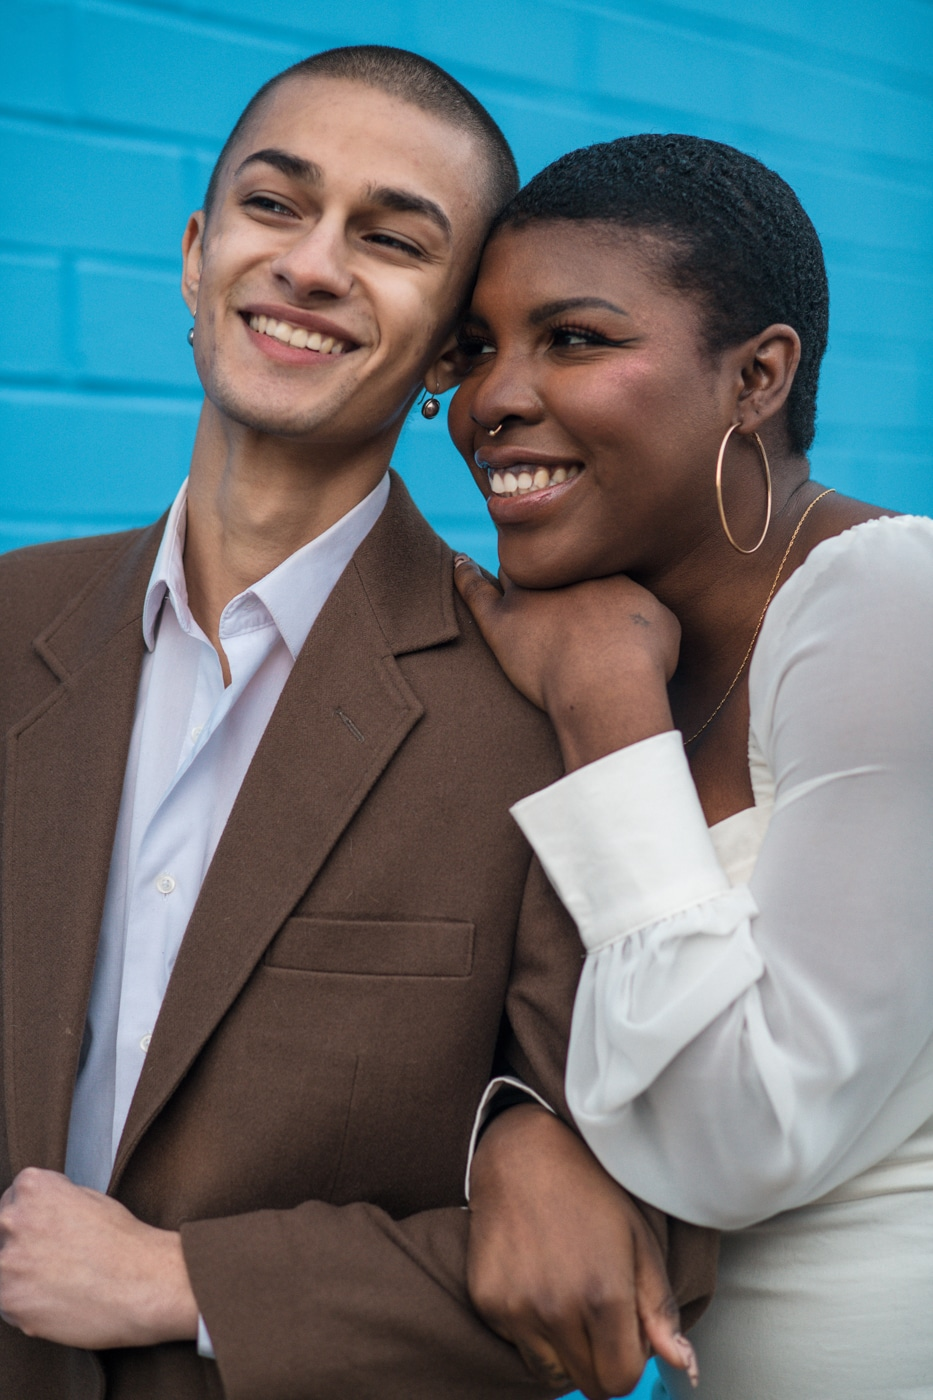 colorful Atlanta portrait session with couple by blue wall at Westside Cultural Arts Center